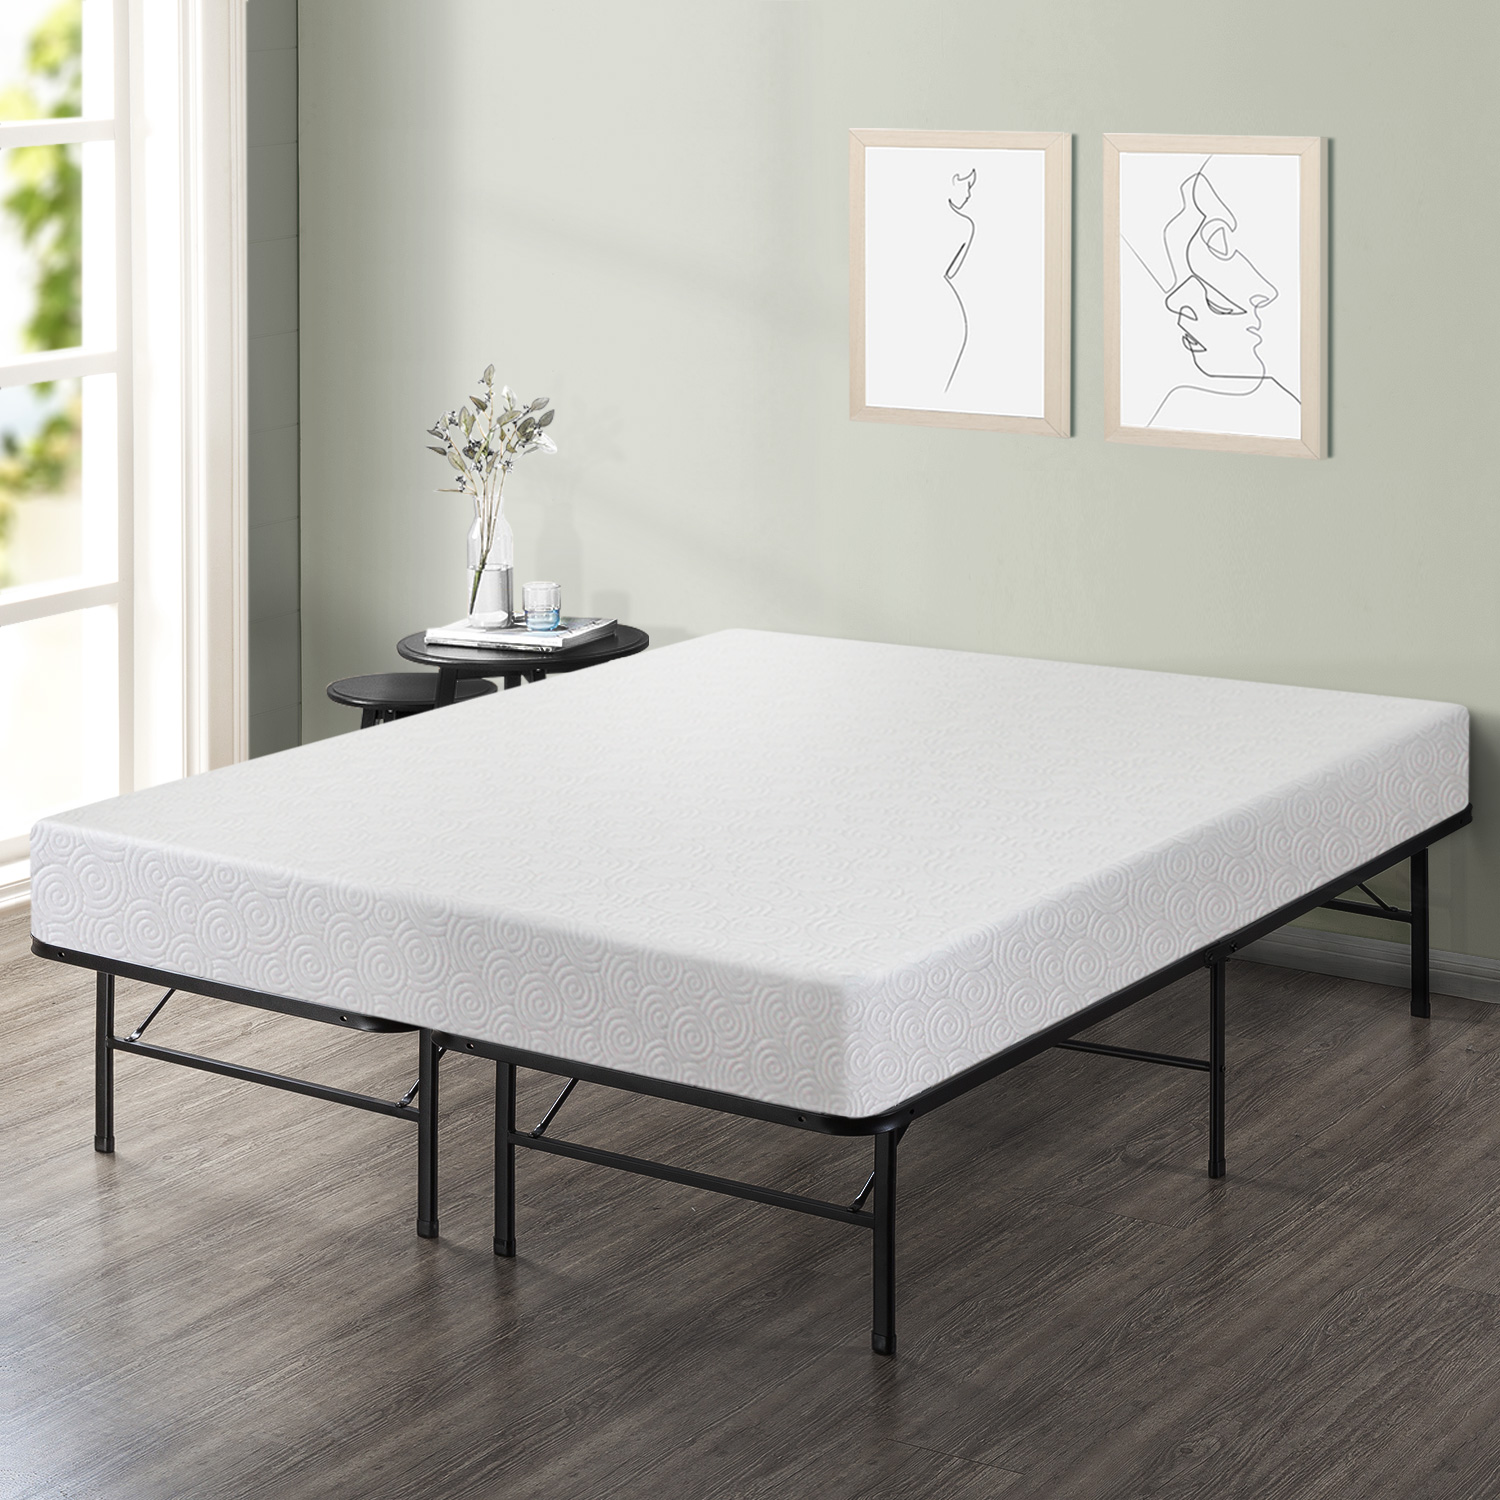 Best Price Mattress 7 Inch Gel Memory Foam Mattress and 14 inch Dual-Use Steel Bed Frame/Foundation Set - Twin